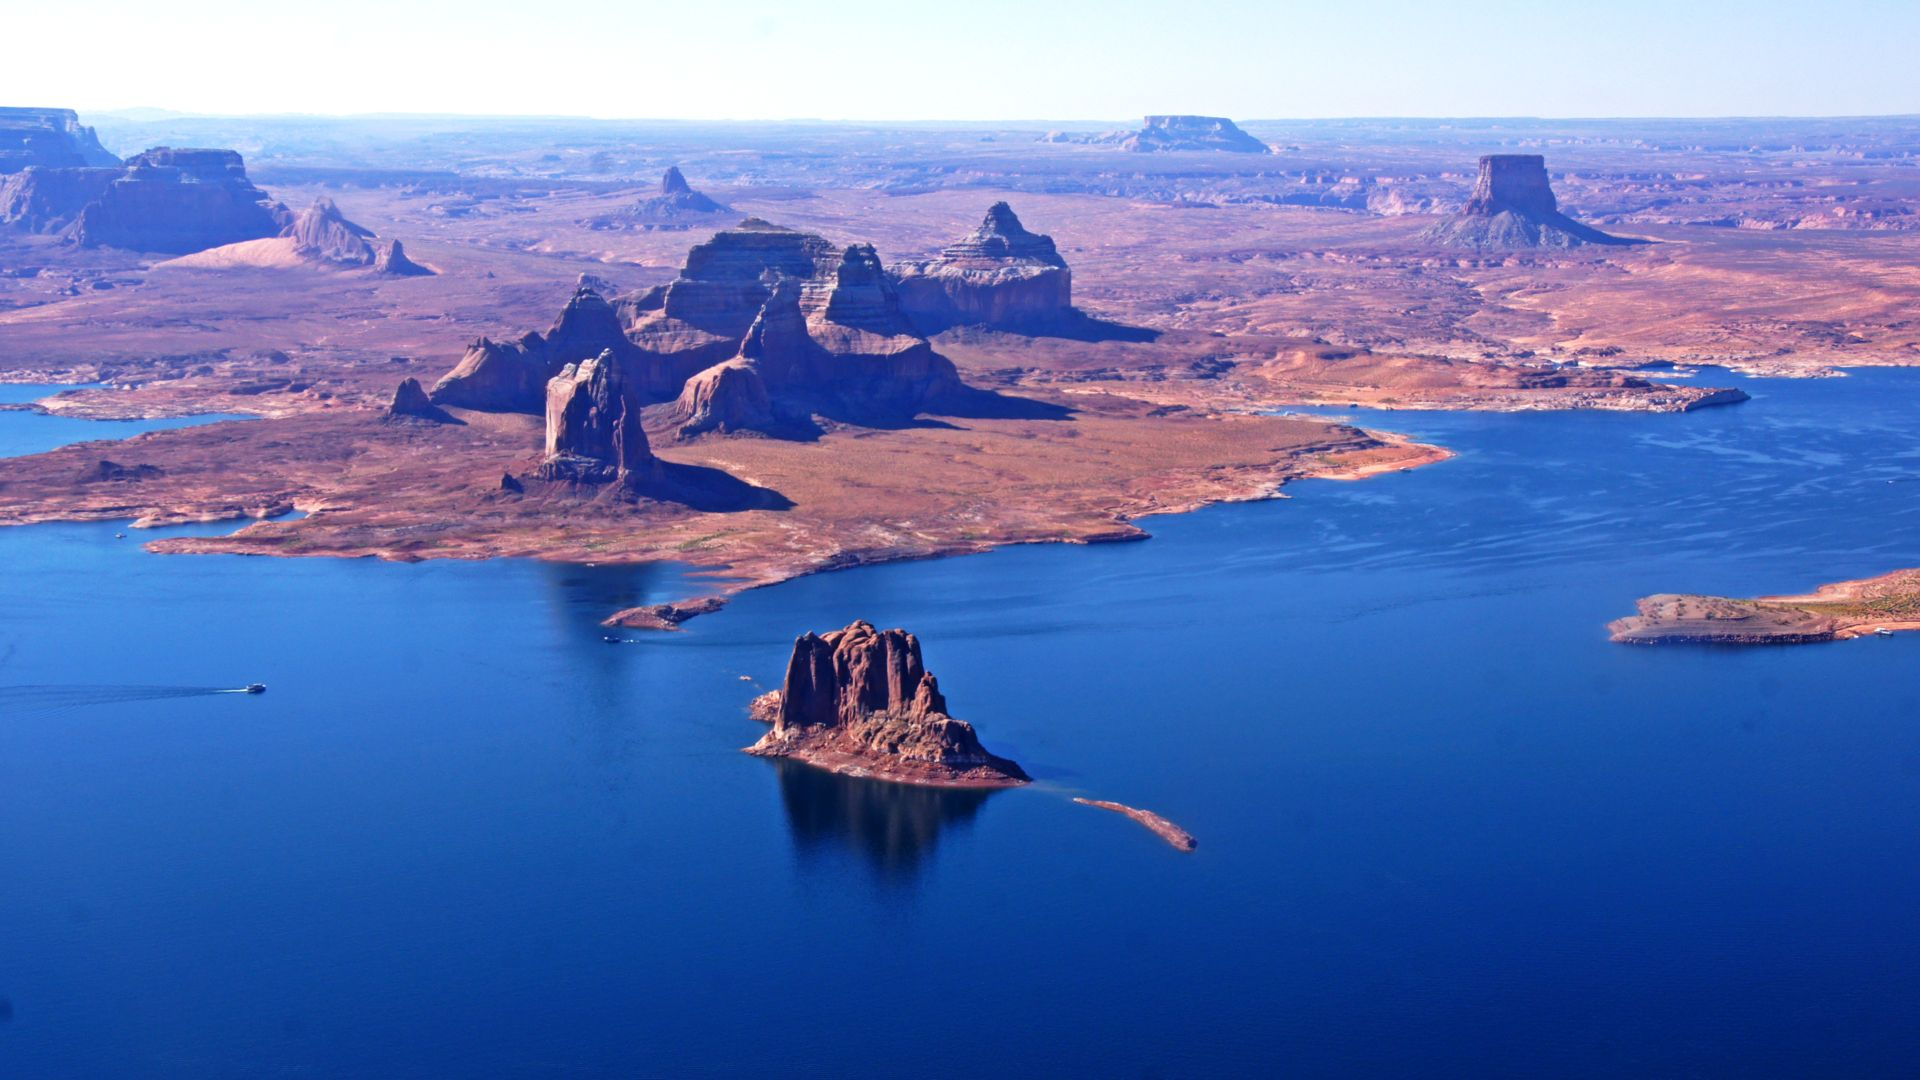 Aerial view of the red rocks of Lake Powell